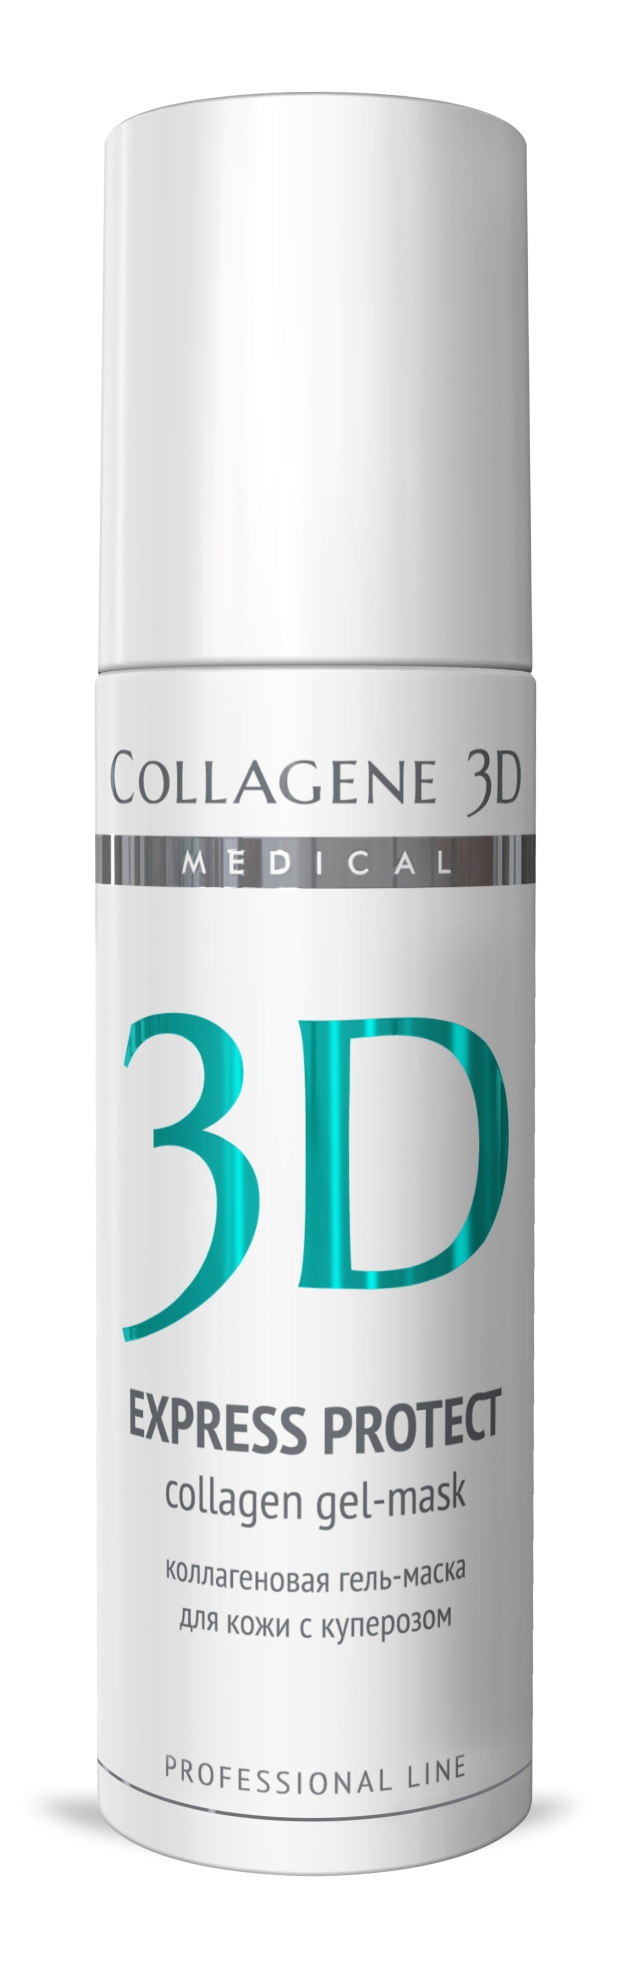 "MEDICAL COLLAGENE 3D ����-����� ������������ � ������� �������� ""Express Protect"" 130�� ����."